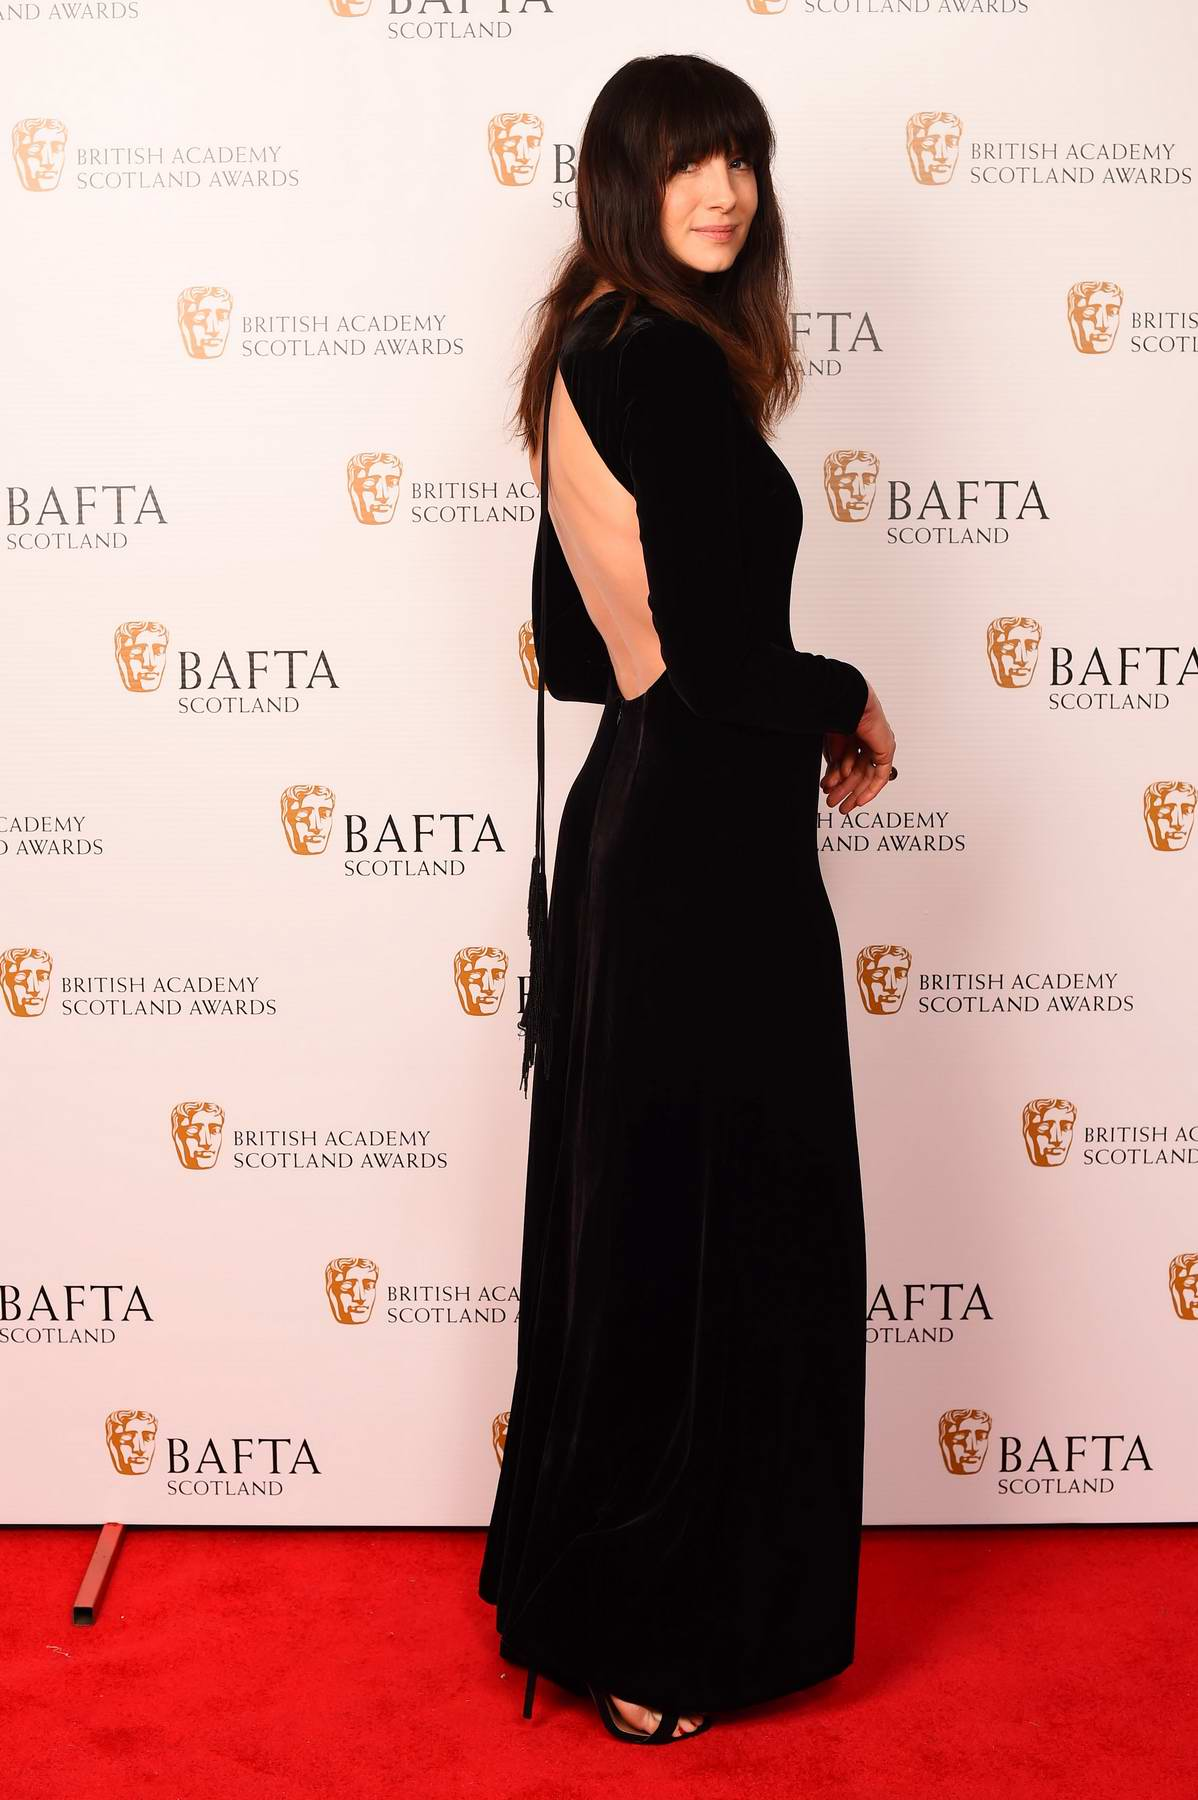 Caitriona Balfe at the British Academy Scotland Awards in Glasgow, Scotland